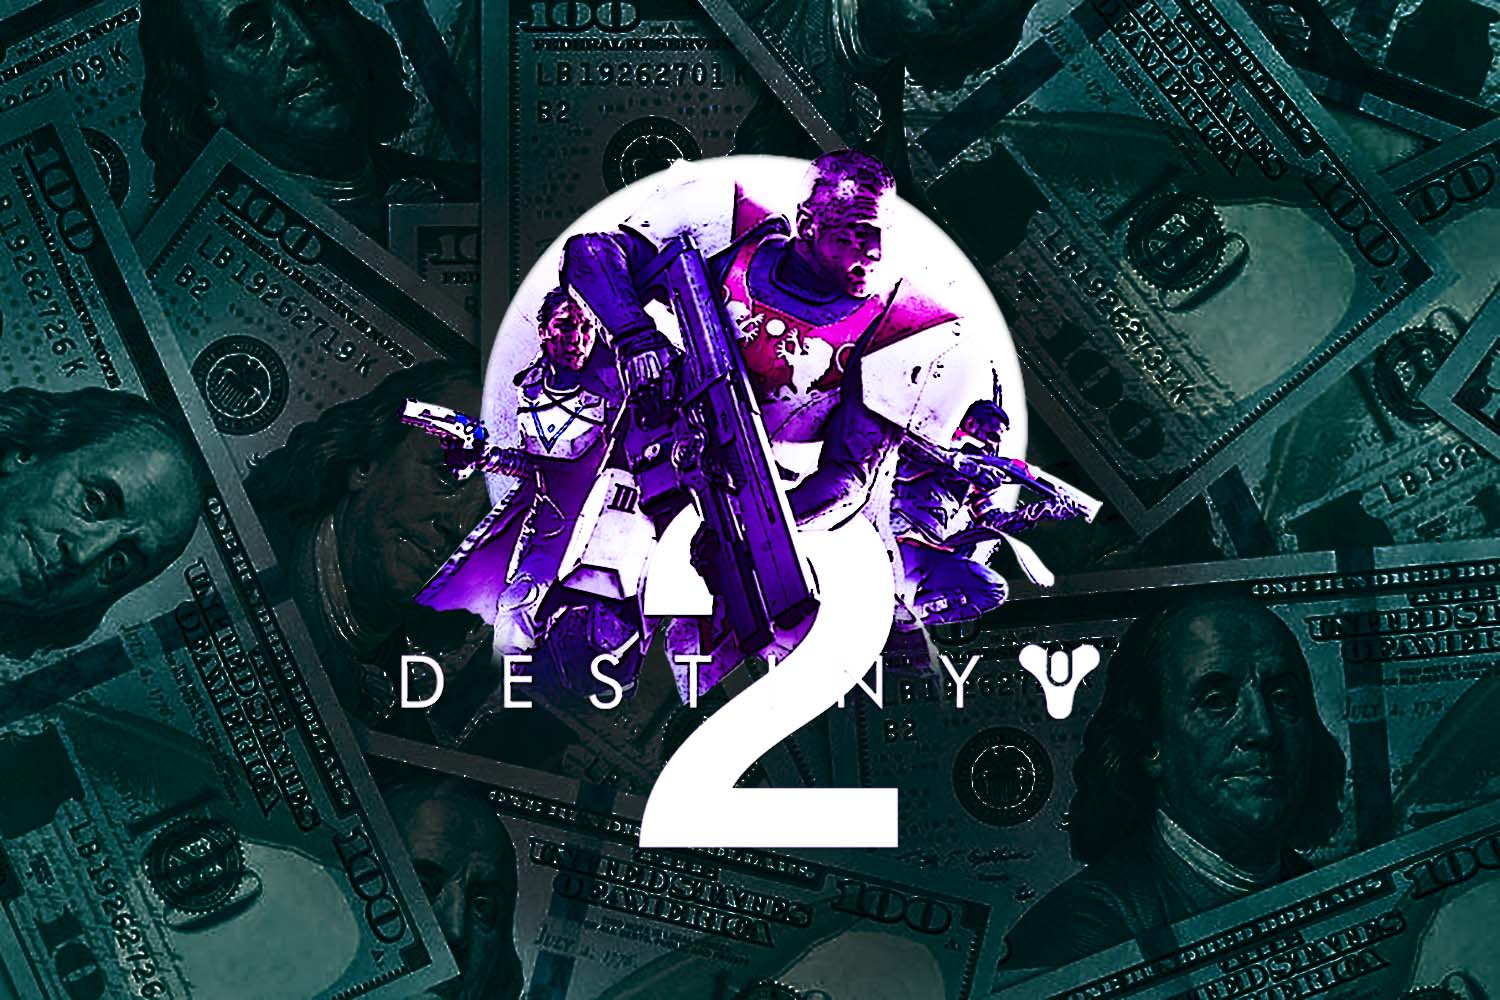 Destiny 2 Sales In Trouble (Should Investors Worry?)